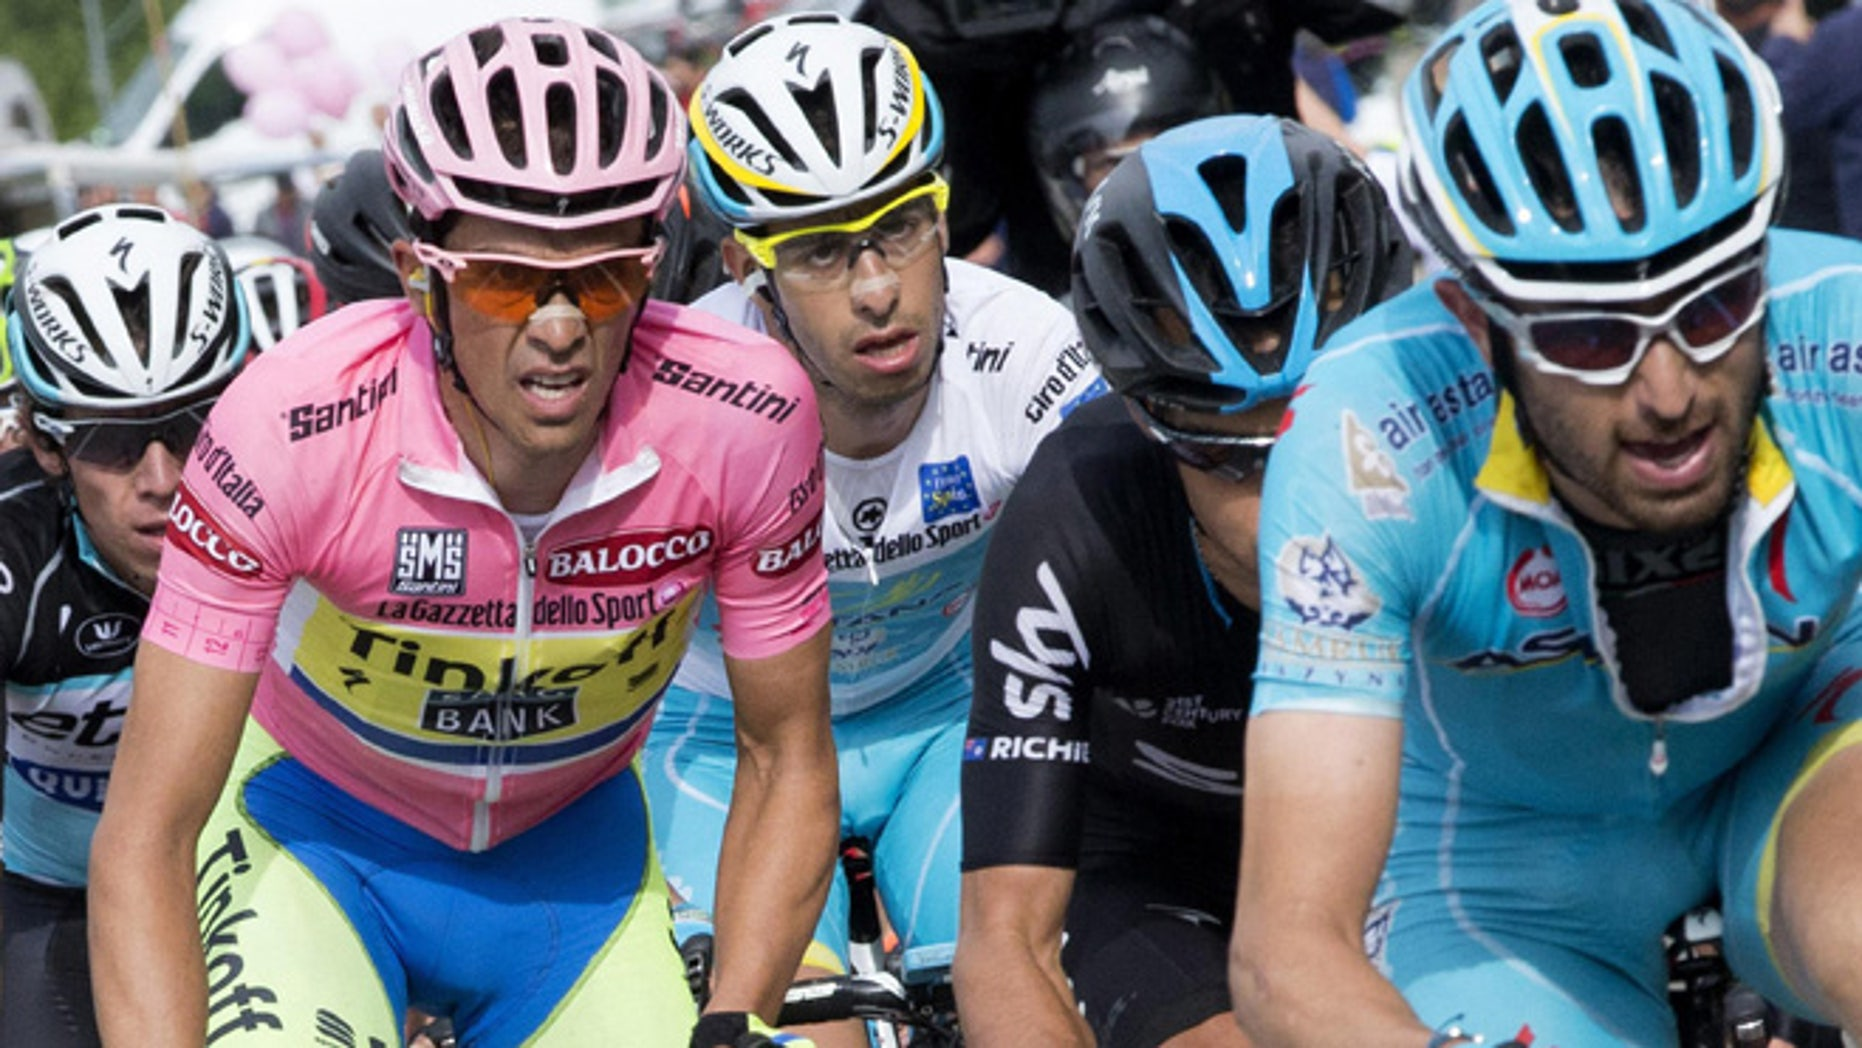 Overall leader Alberto Contador, of Spain, wears the pink jersey during the eight leg of the Giro d'Italia, Tour of Italy cycling race  from  Fiuggi to Campitello Matese, Italy, Saturday, May 16, 2015. (Claudio Peri/ANSA via AP)  ITALY OUT